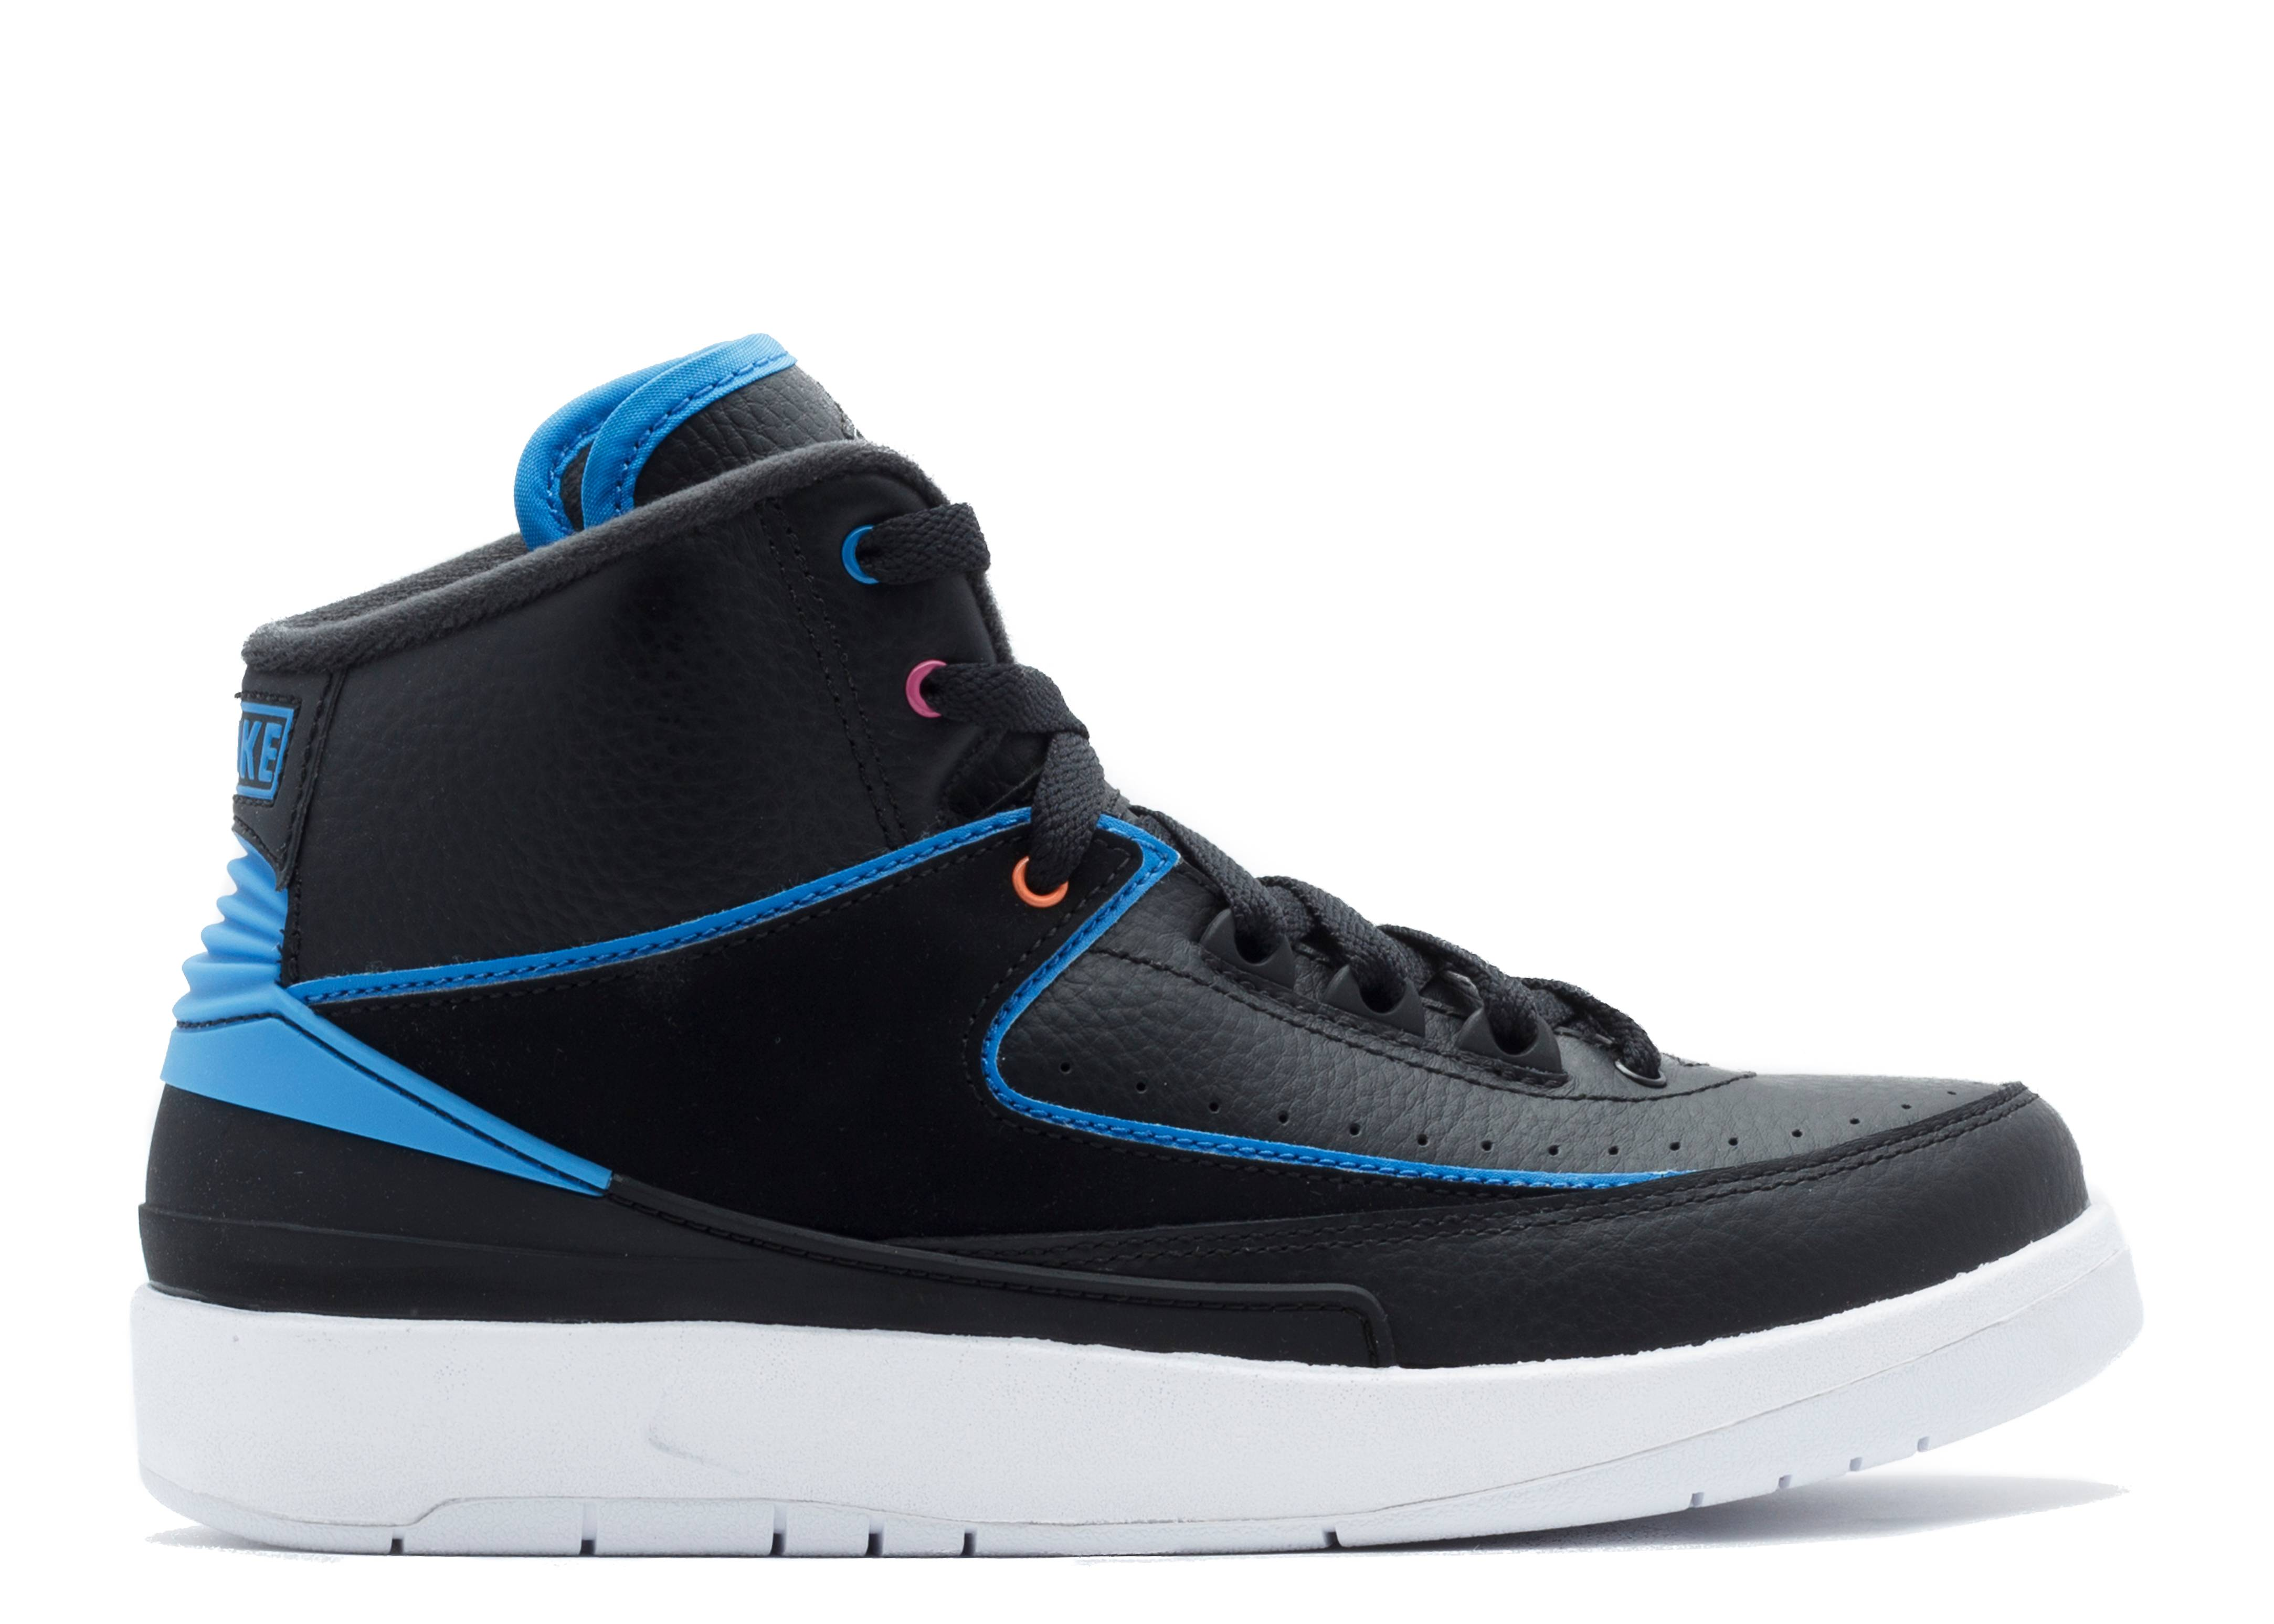 5b40a279baf399 Air Jordan 2 (II) Shoes - Nike